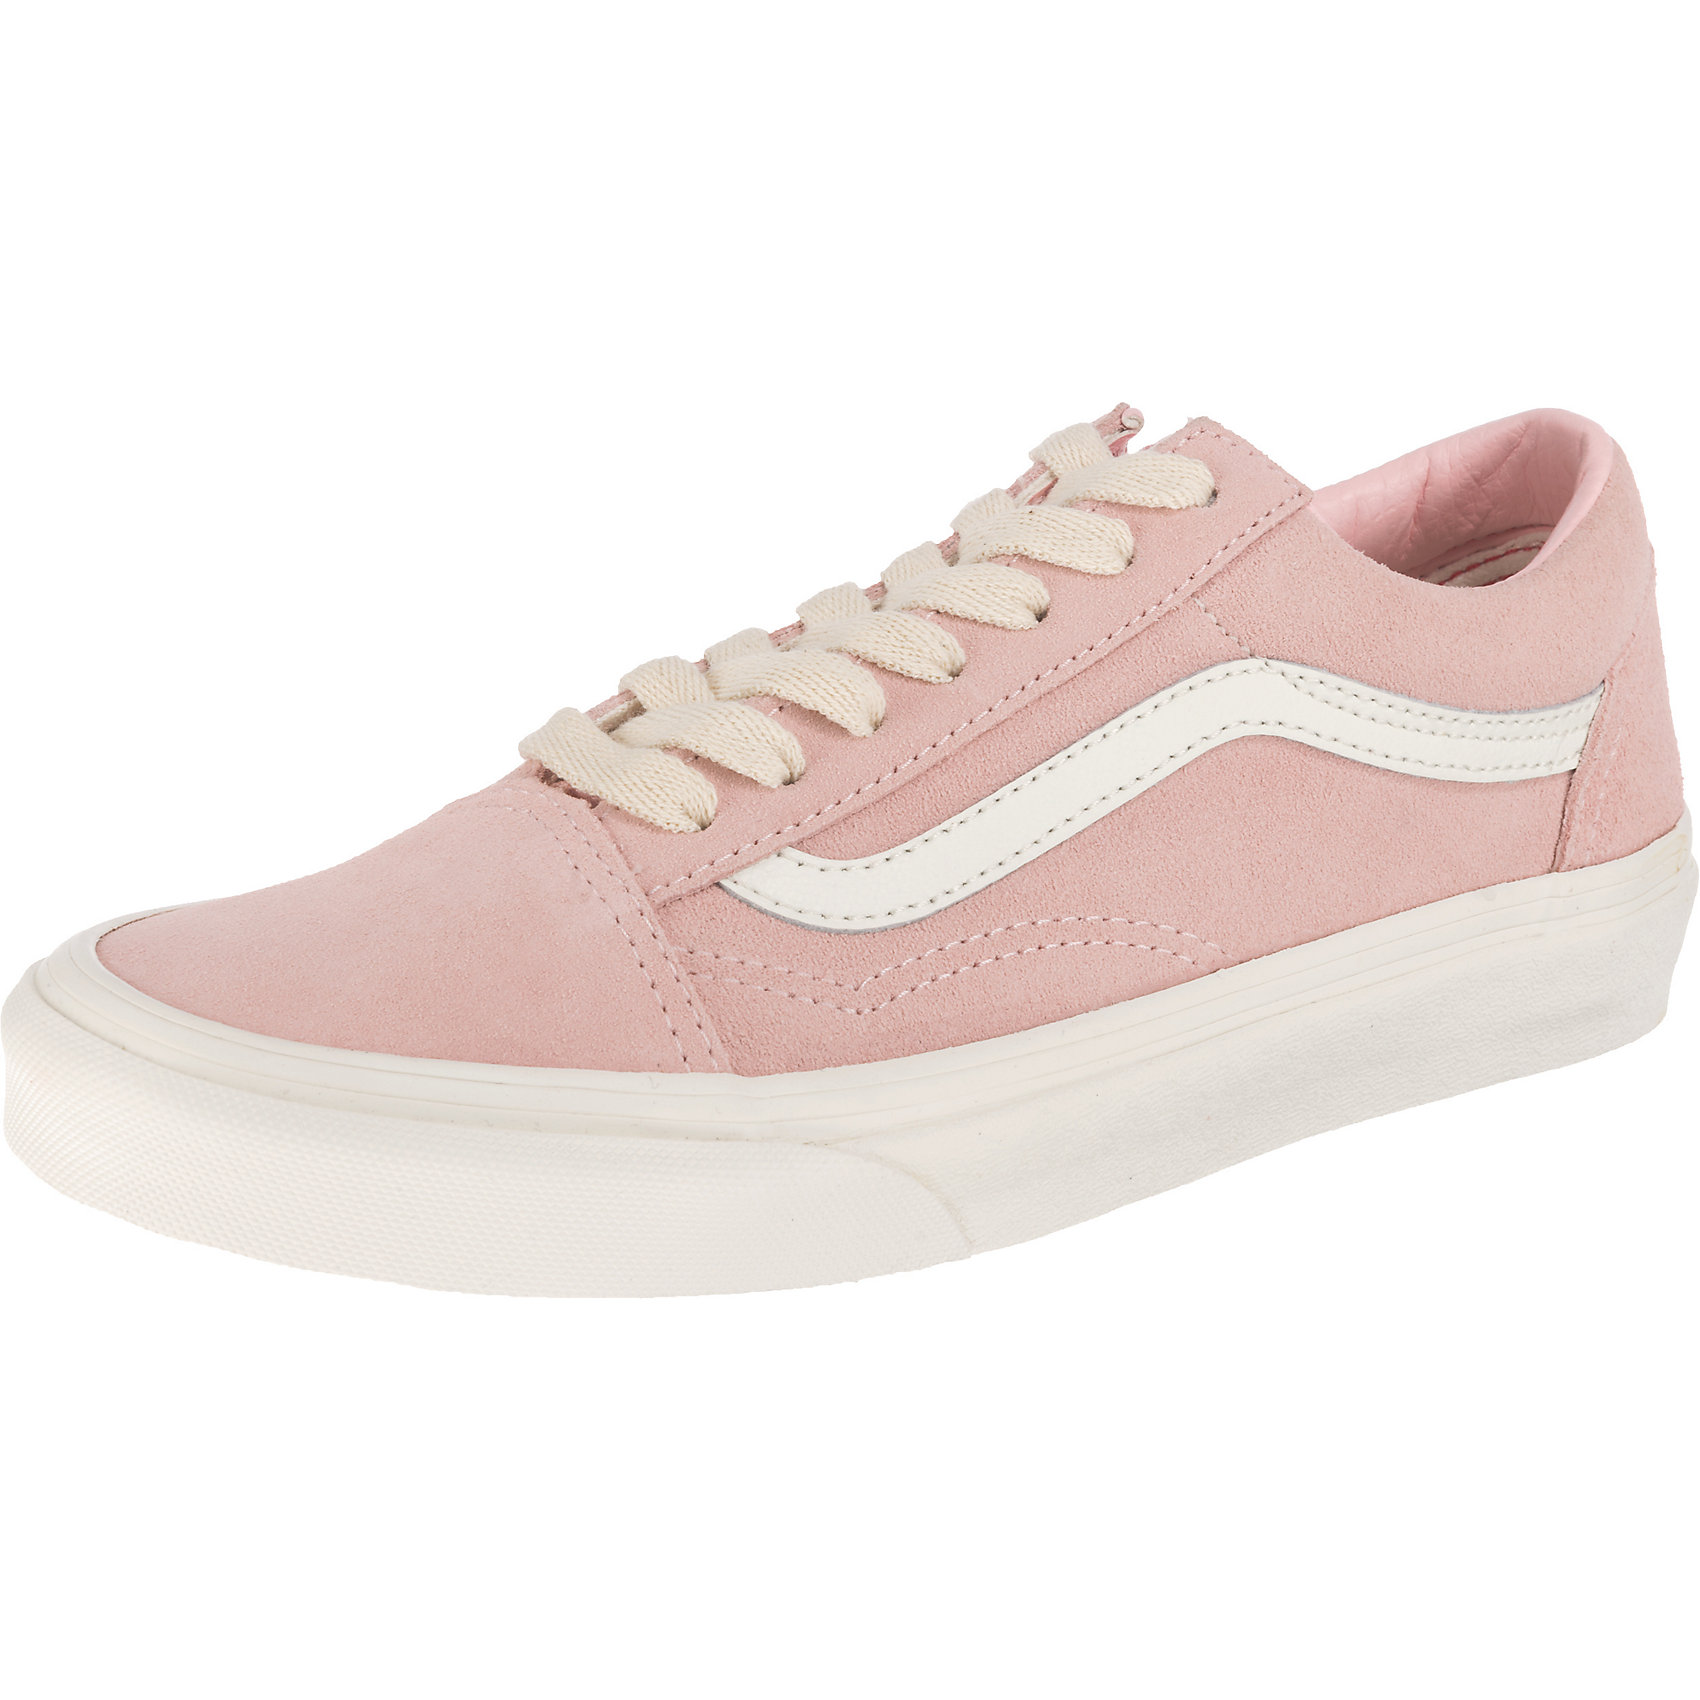 neu vans old skool sneakers 7011056 f r damen rosa ebay. Black Bedroom Furniture Sets. Home Design Ideas